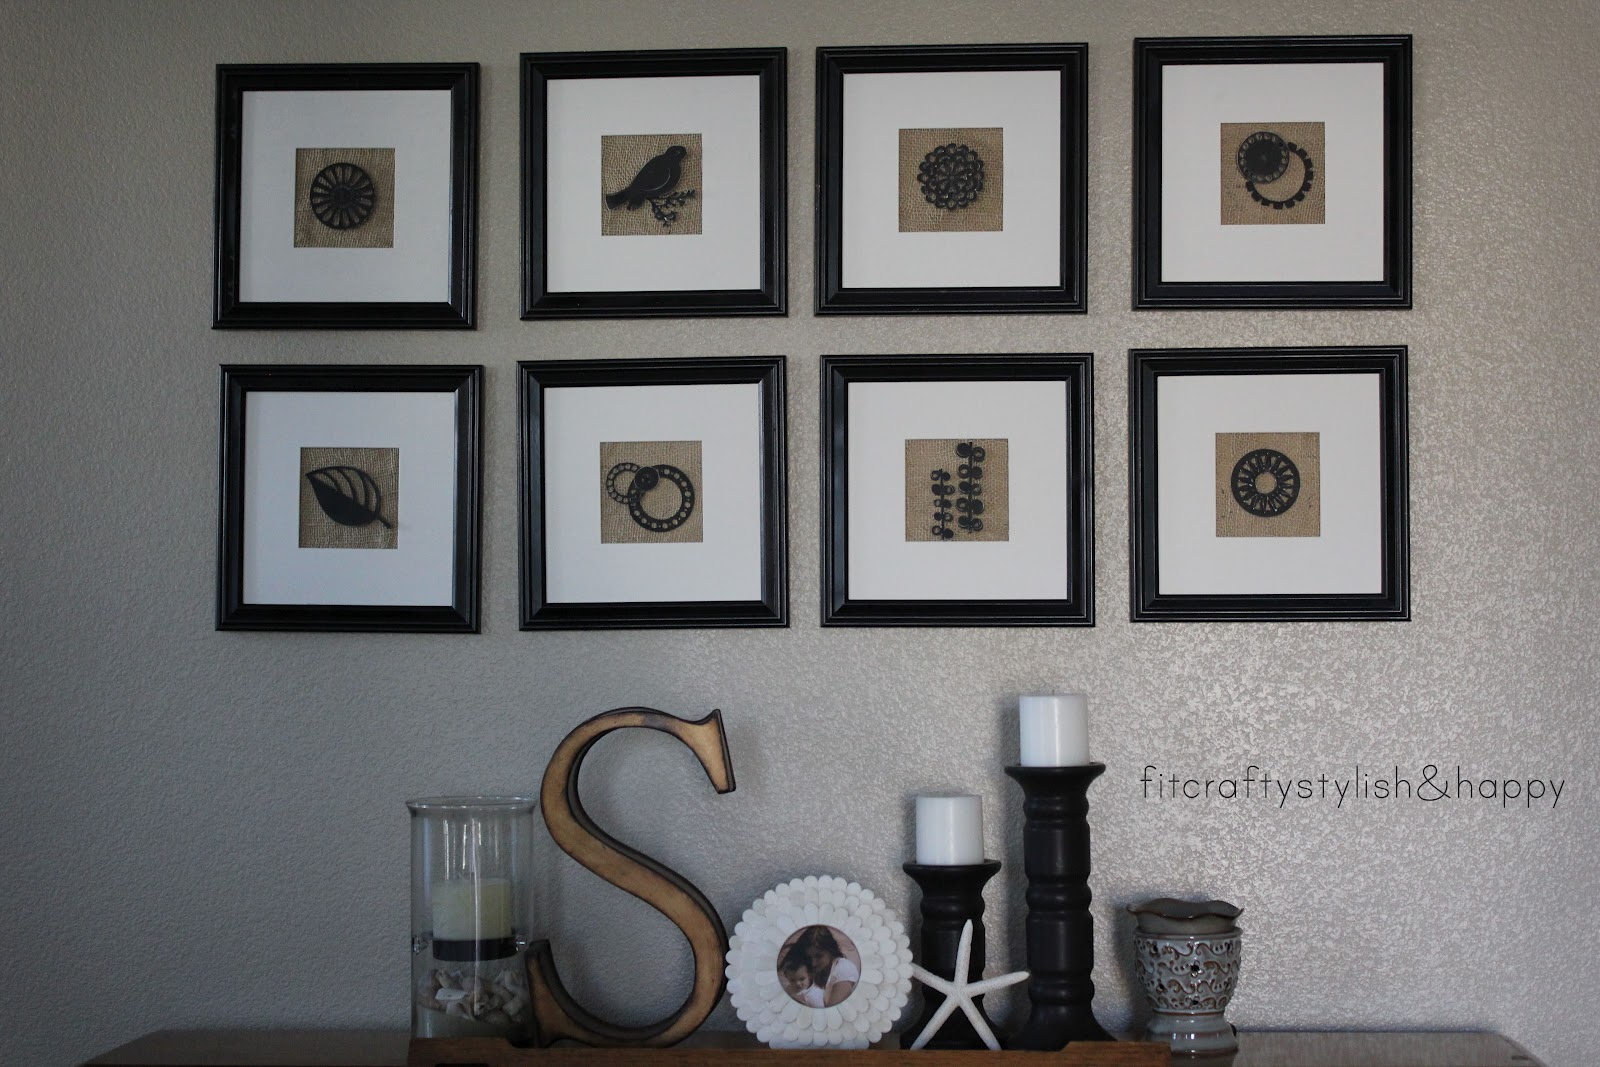 Fit, Crafty, Stylish And Happy: Living Room Makeover